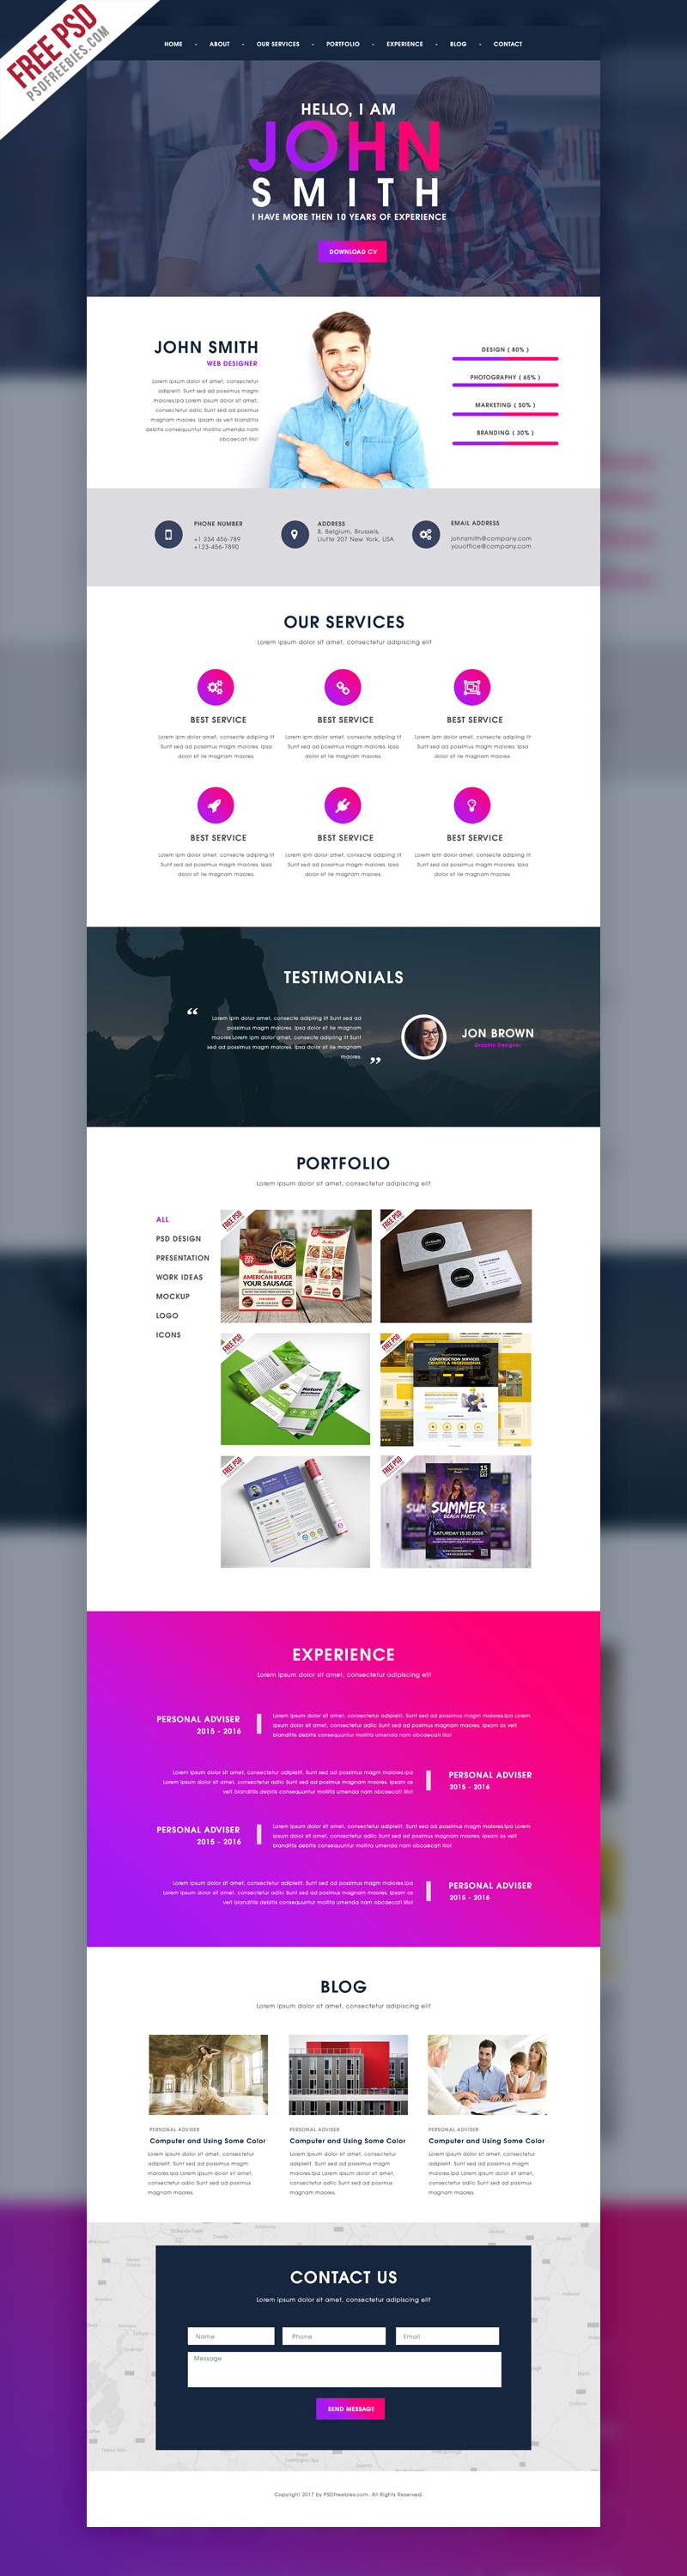 Creative One Page Portfolio Website Template Free PSD ...